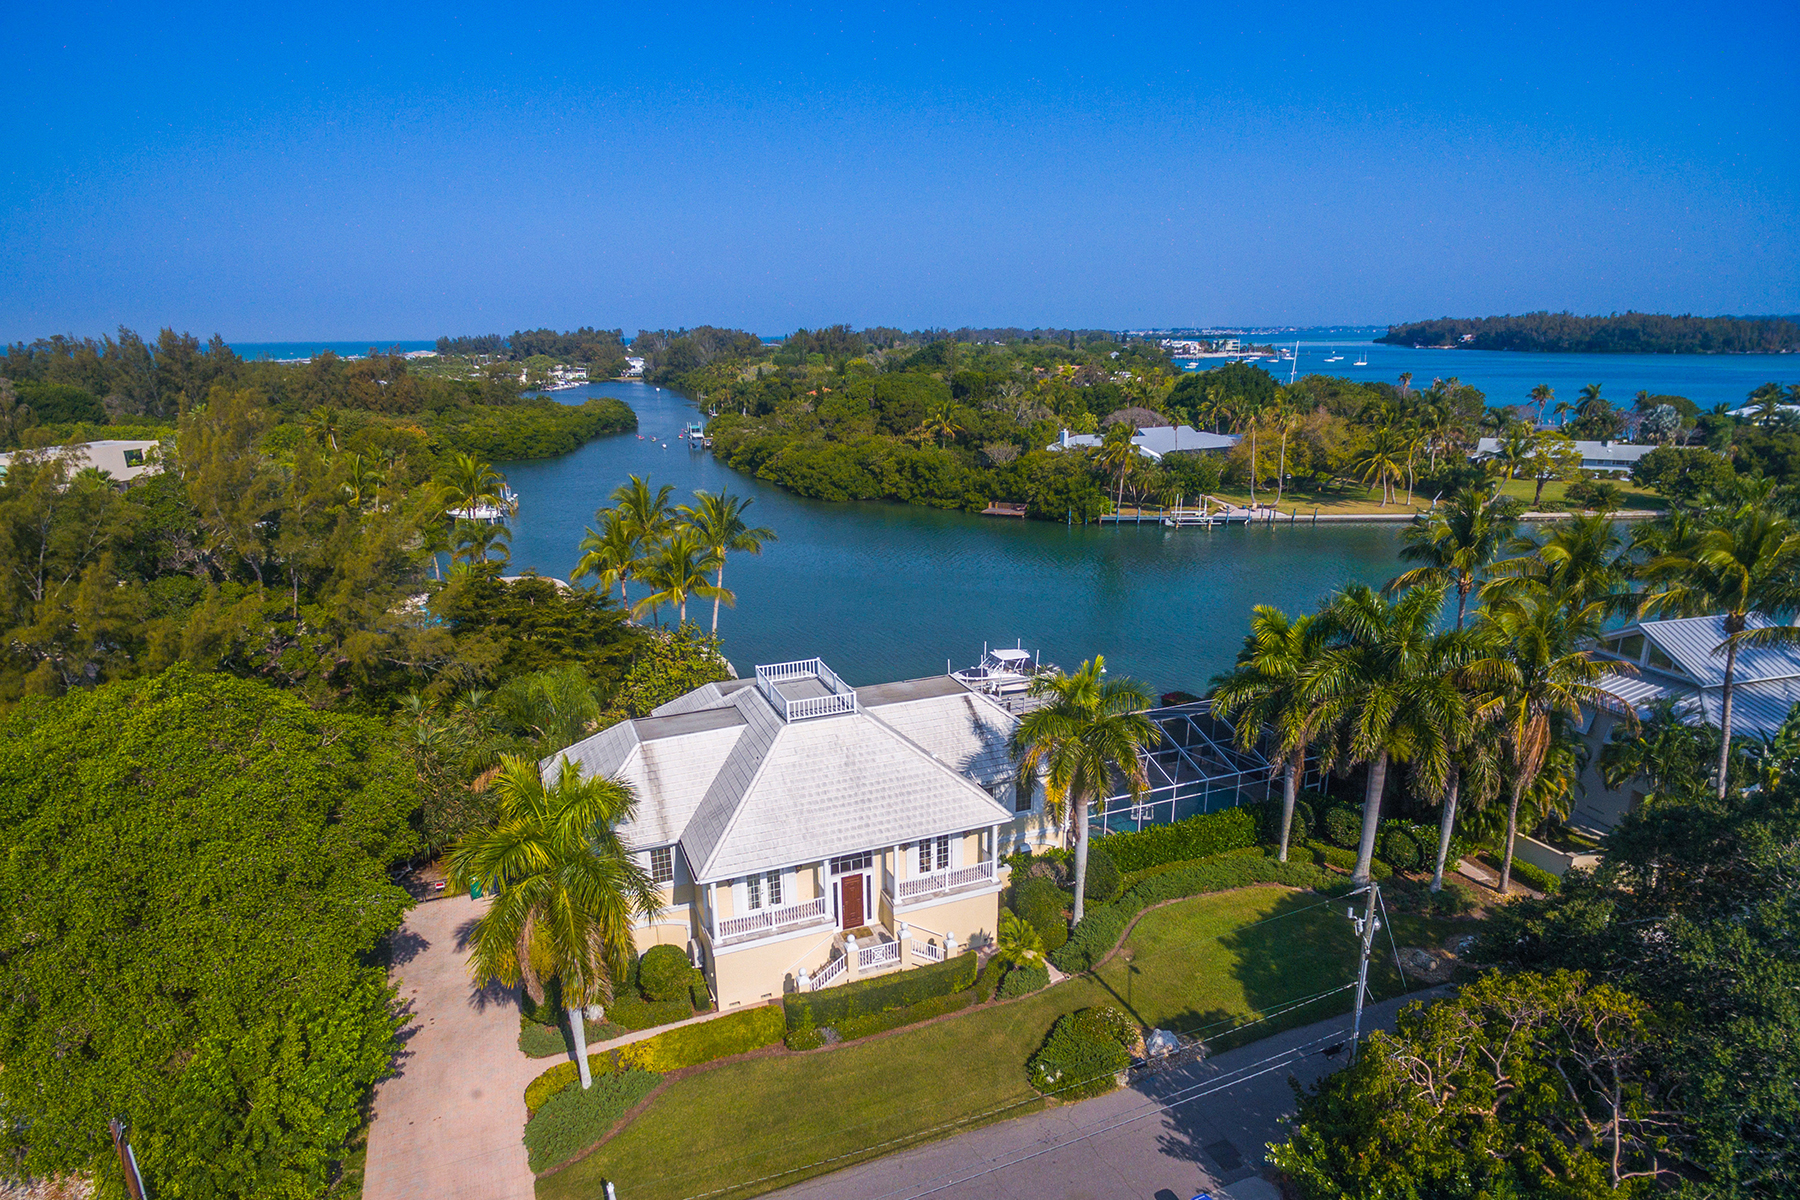 Single Family Home for Sale at SLEEPY LAGOON 593 Juan Anasco Dr Longboat Key, Florida, 34228 United States